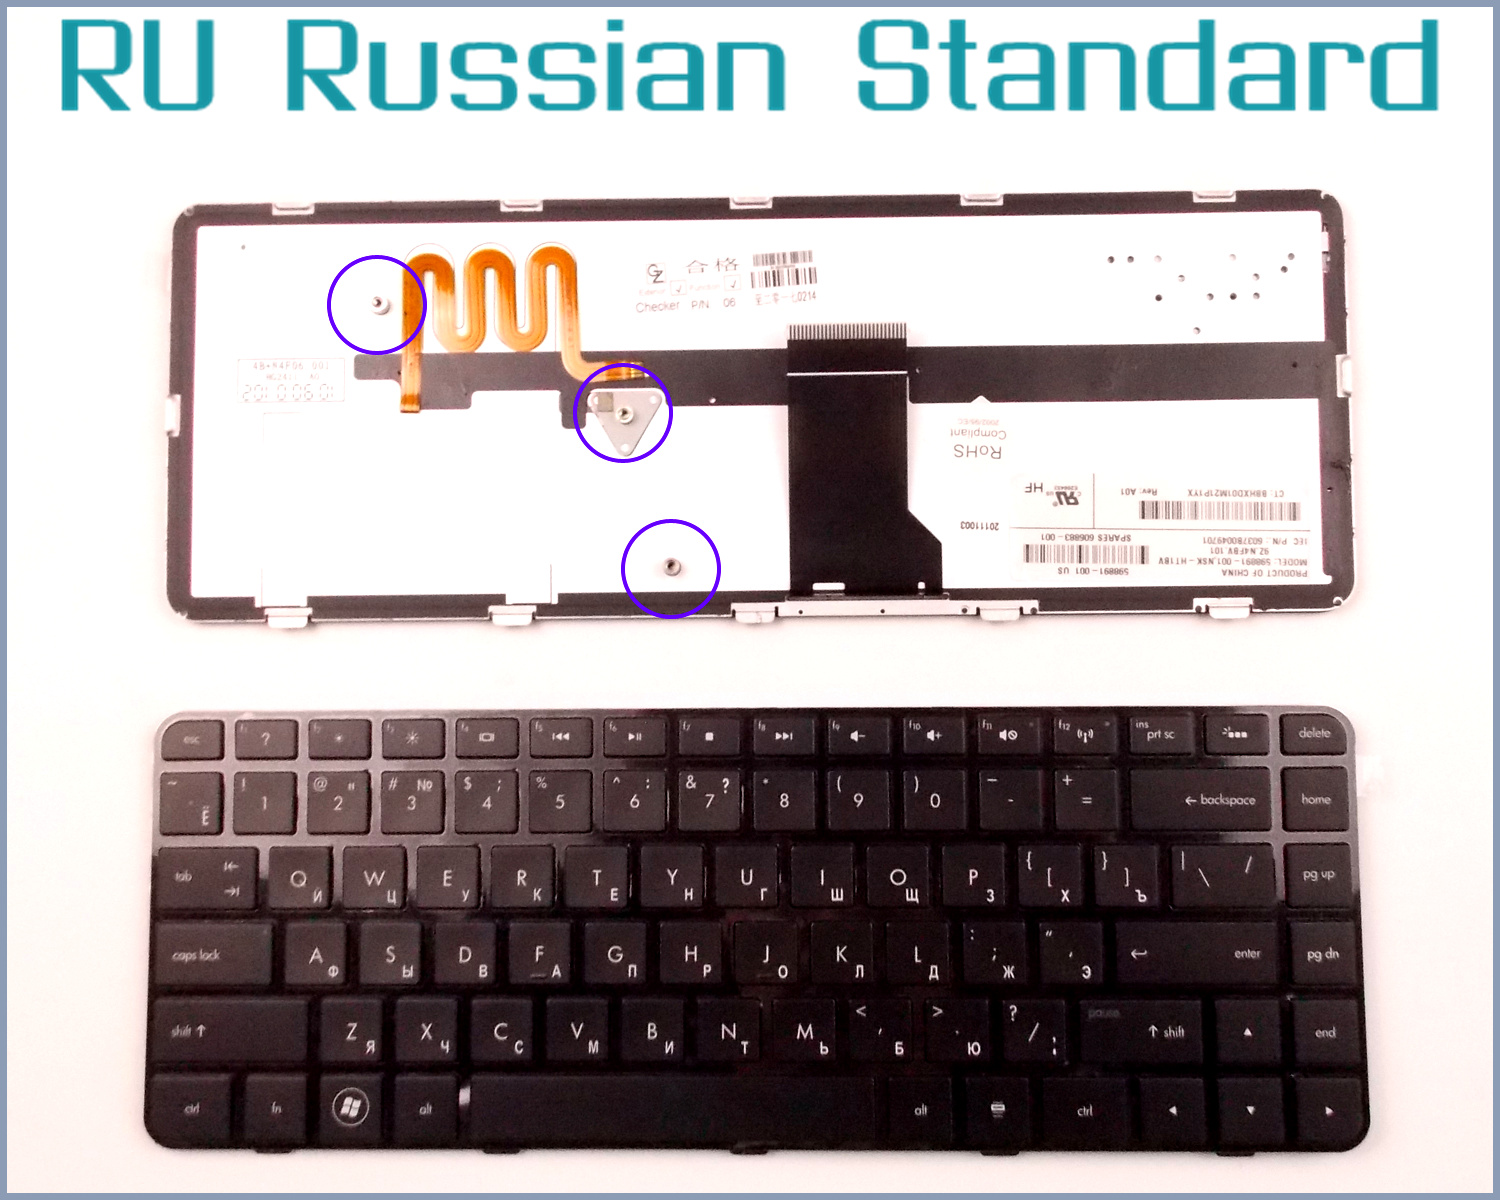 Russian RU Version Keyboard for HP Pavilion 608222 001 608222 161 597911 161 624578 001 597911